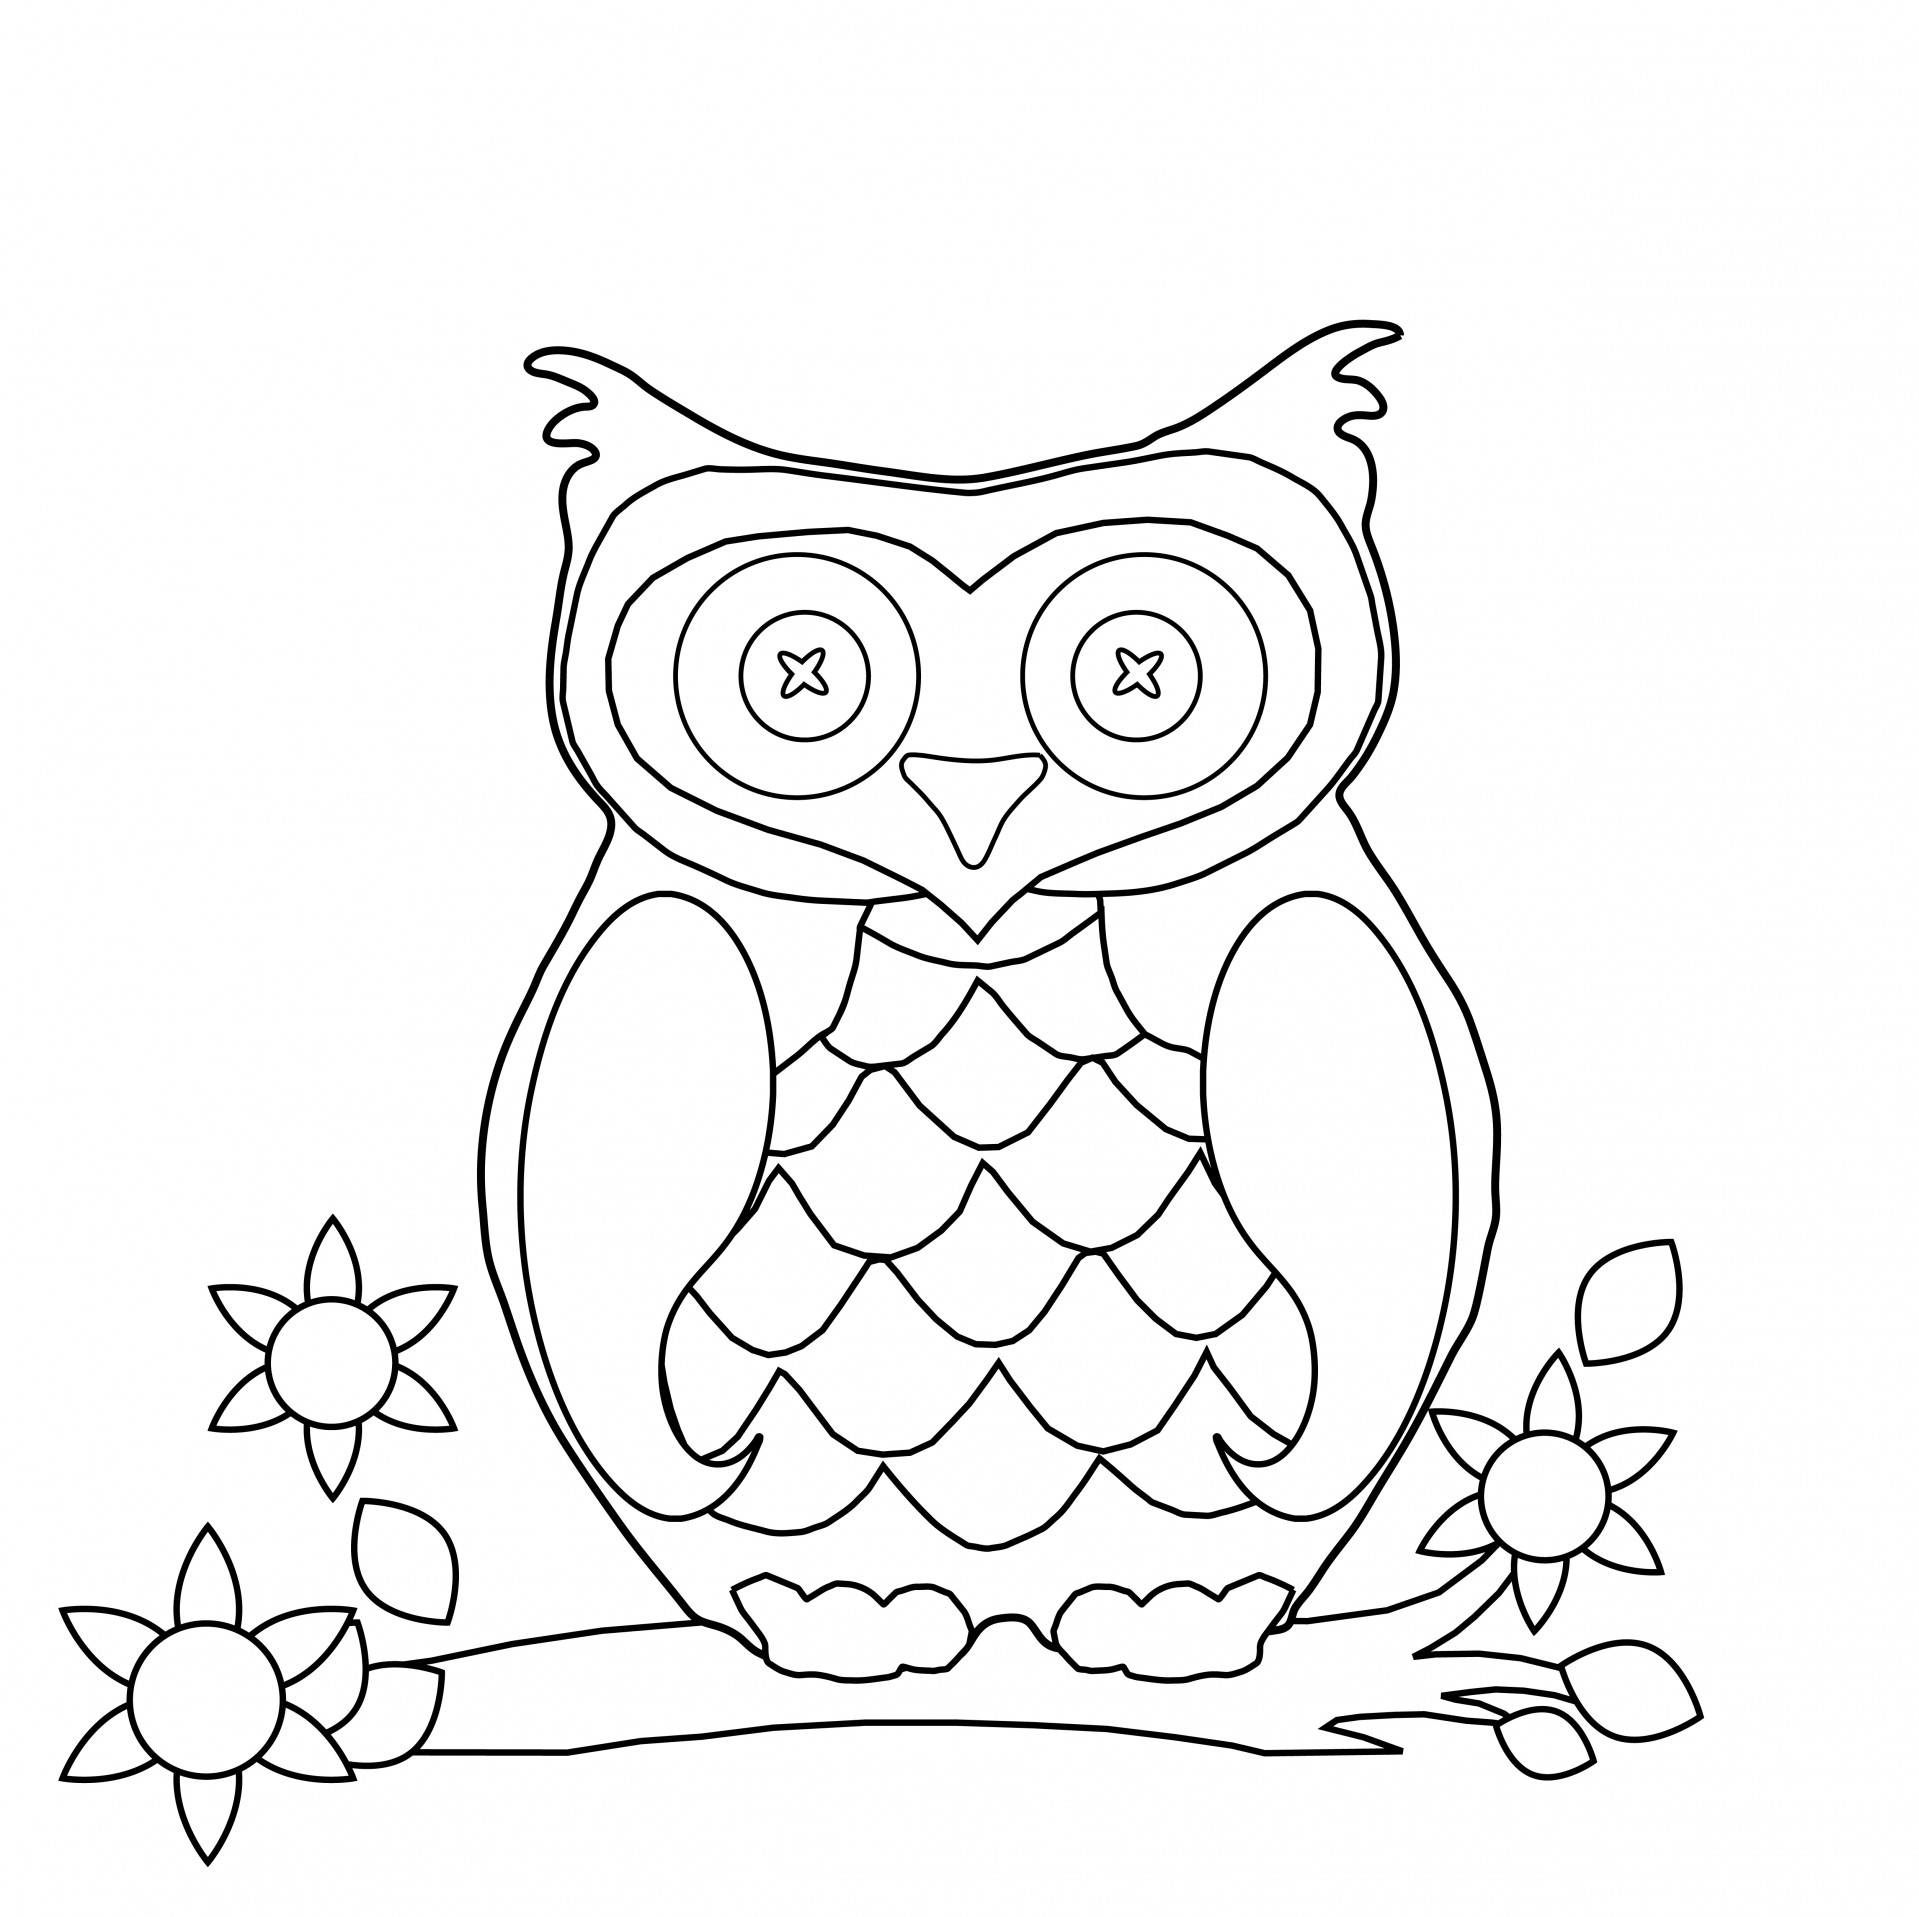 coloring clipart for kids wonderful pirate clip art and coloring pages for kids coloring for clipart kids